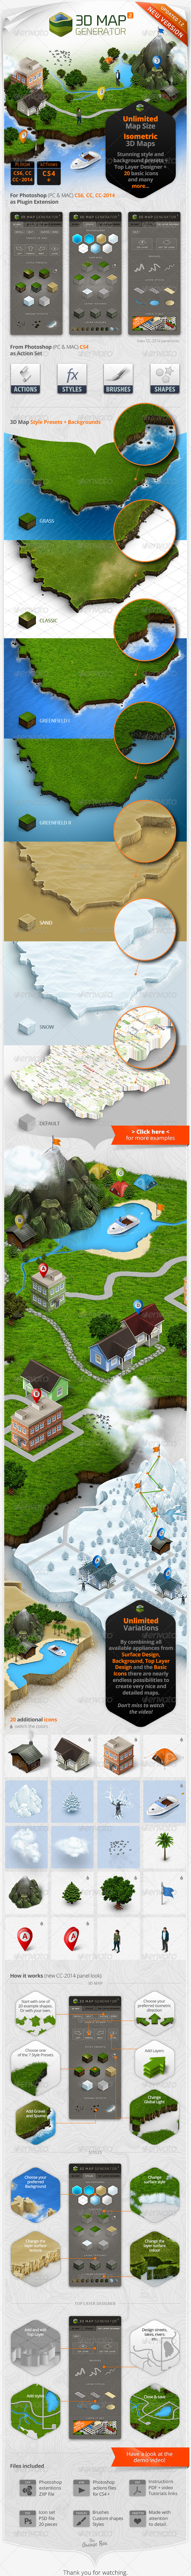 3D Map Generator 2 - Isometric - Actions Photoshop